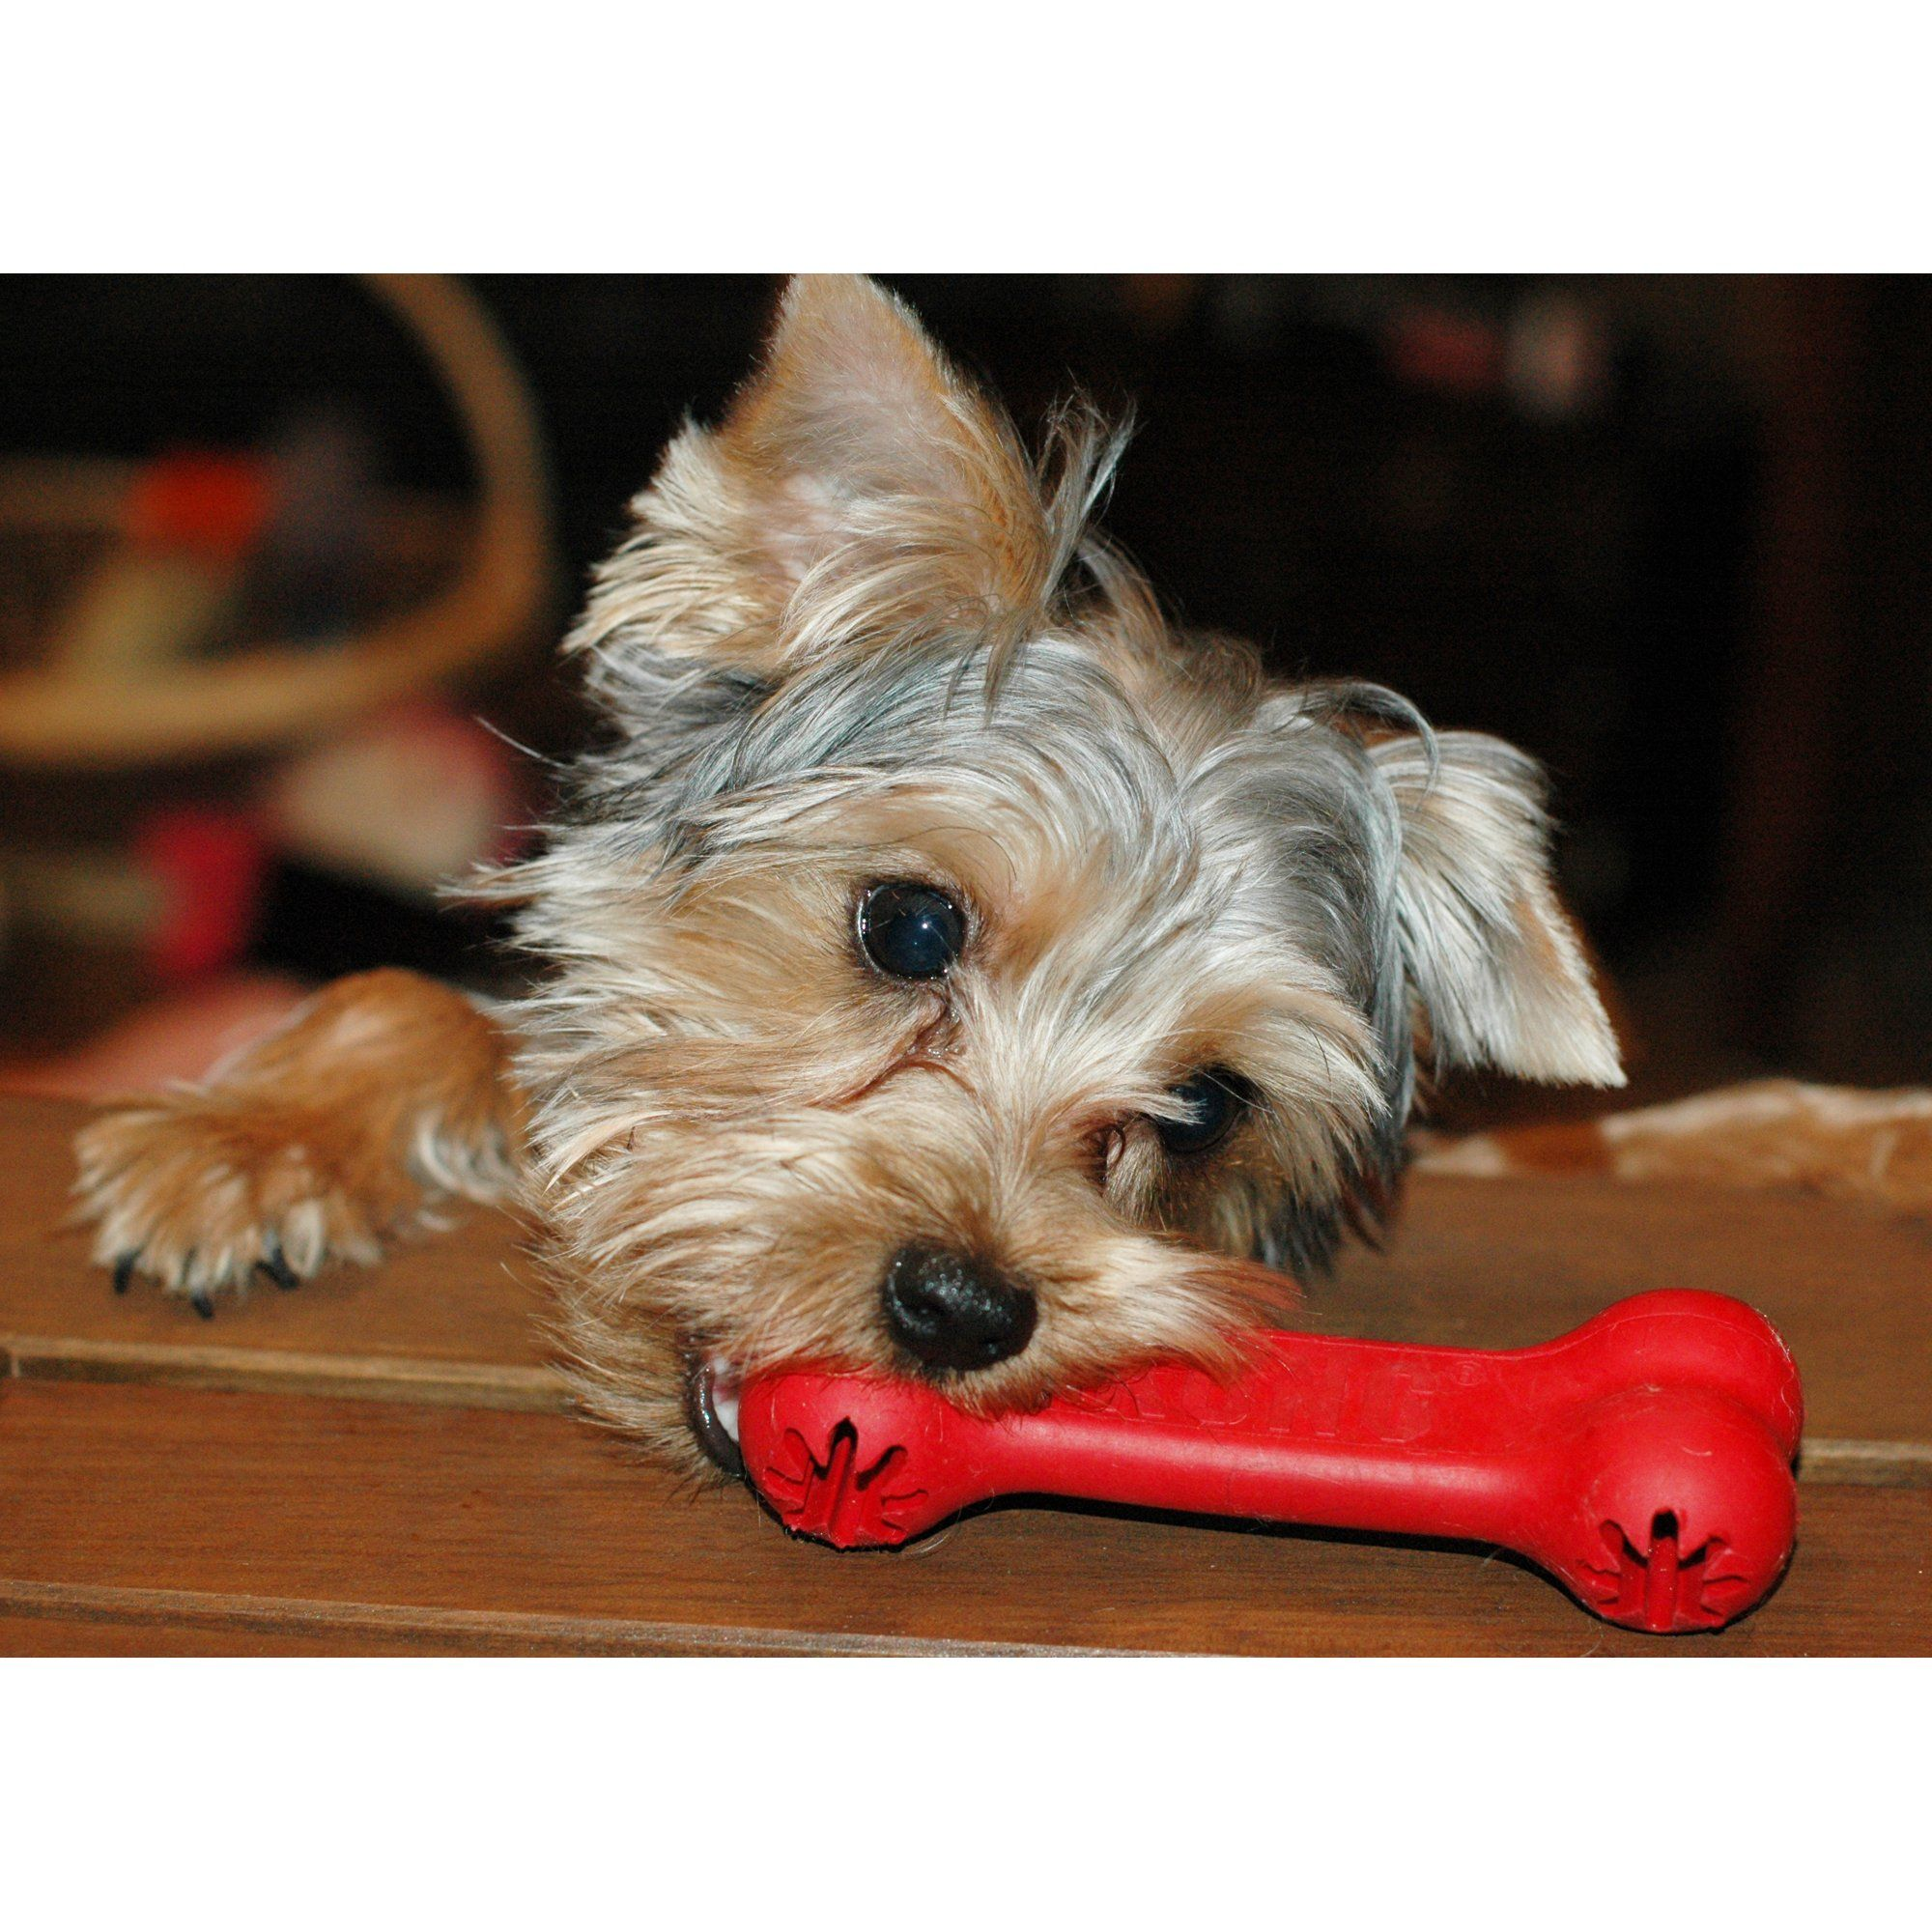 Kong Goodie Bone Dog Toy Small Red Best Dog Toys Dog Toys Dogs